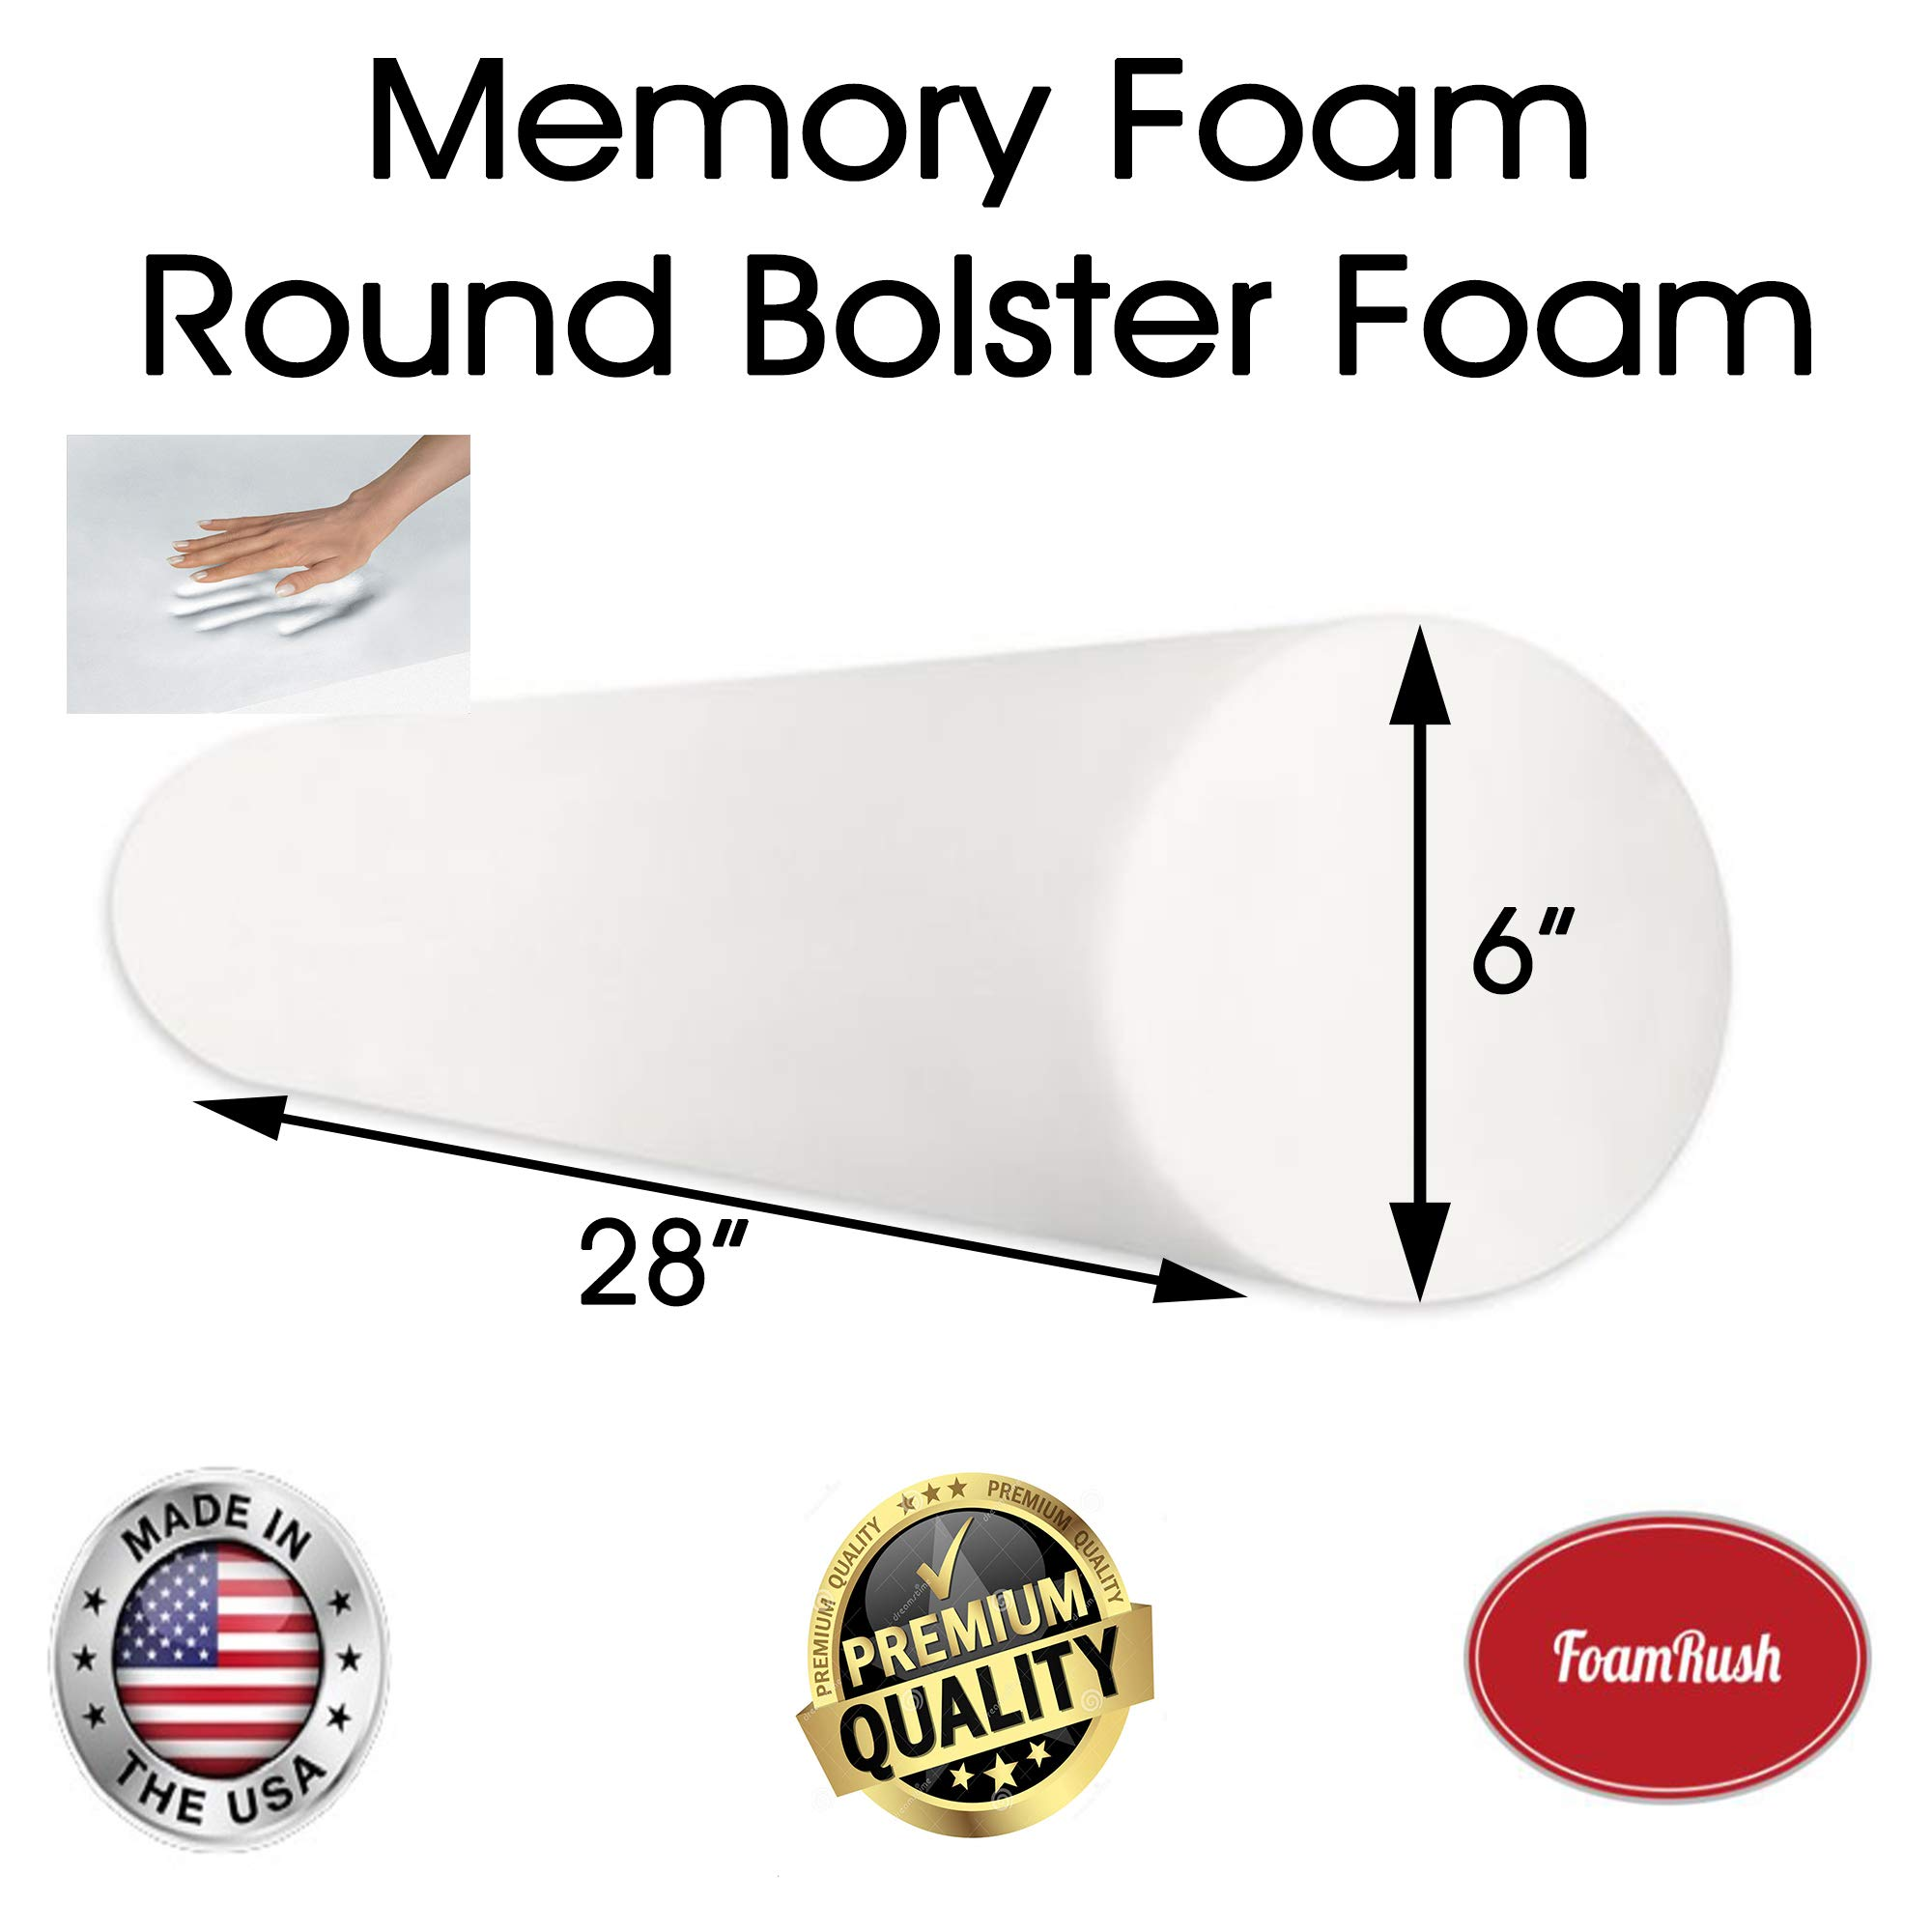 FoamRush 6'' Diameter x 28'' Long Premium Quality Round Bolster Memory Foam Roll Insert Replacement (Ideal for Home Accent Décor Positioning and General Fitness) Made in USA